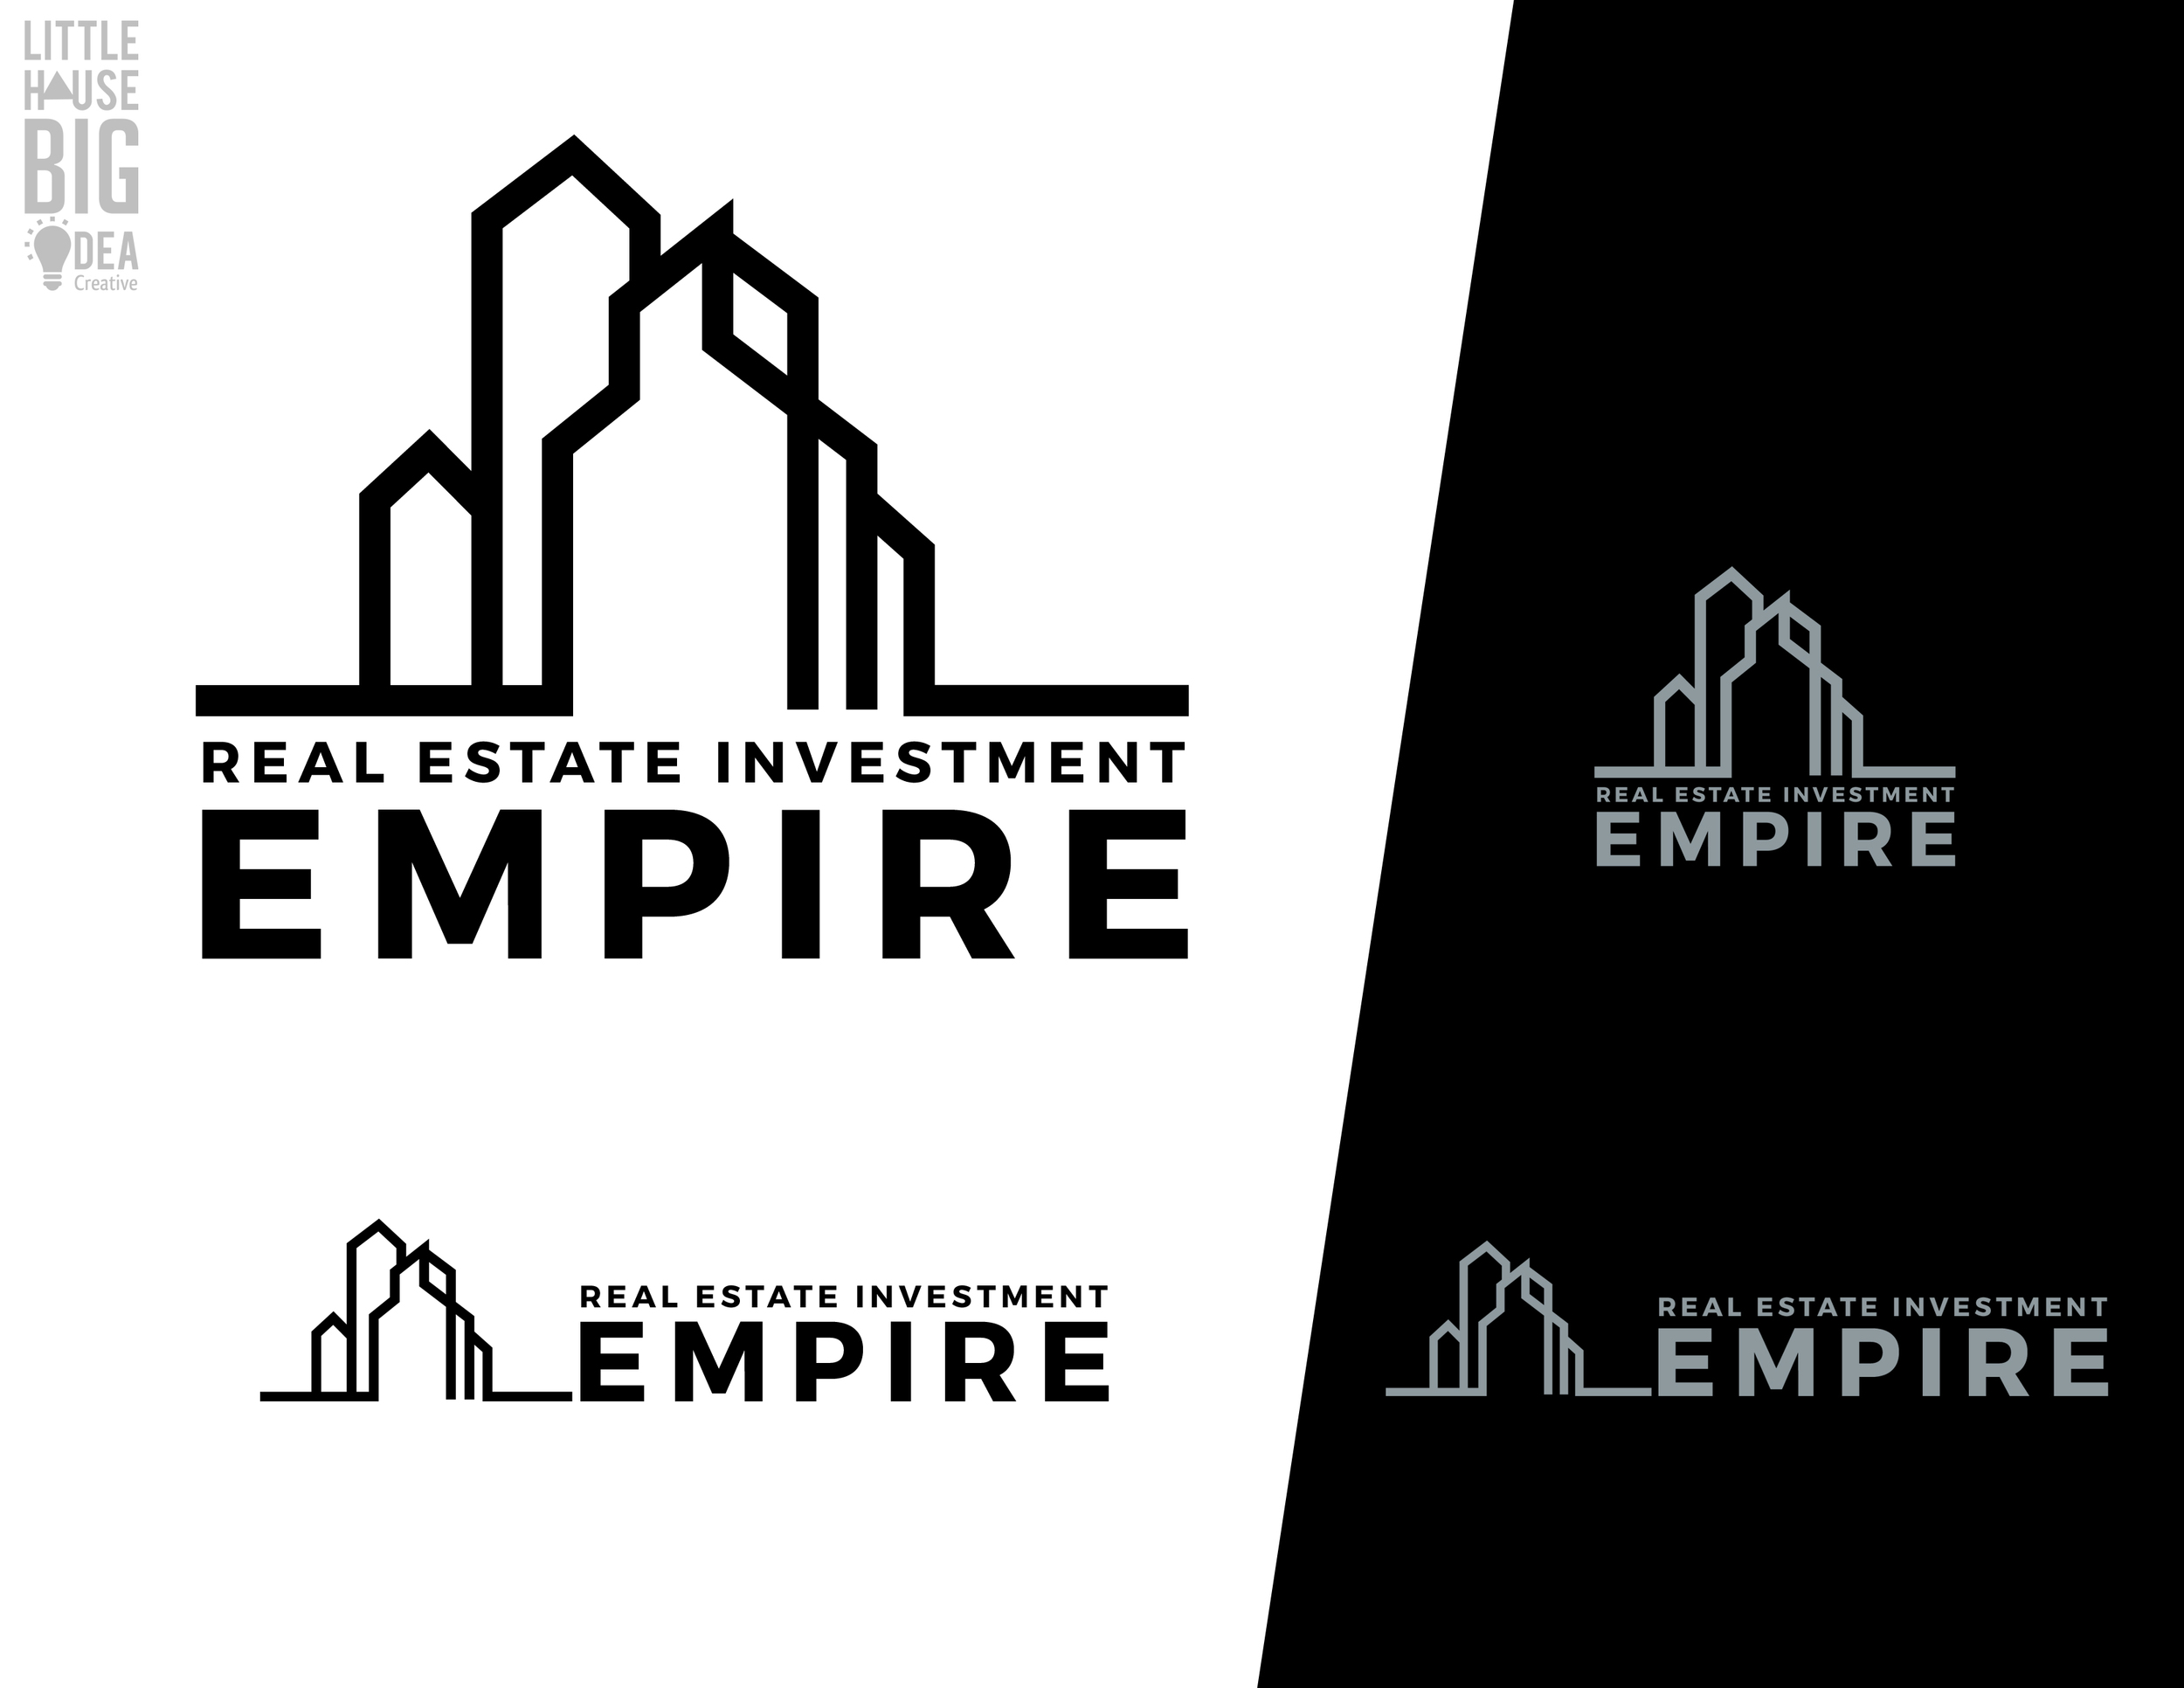 REI_EMPIRE_LLC_V1.jpg